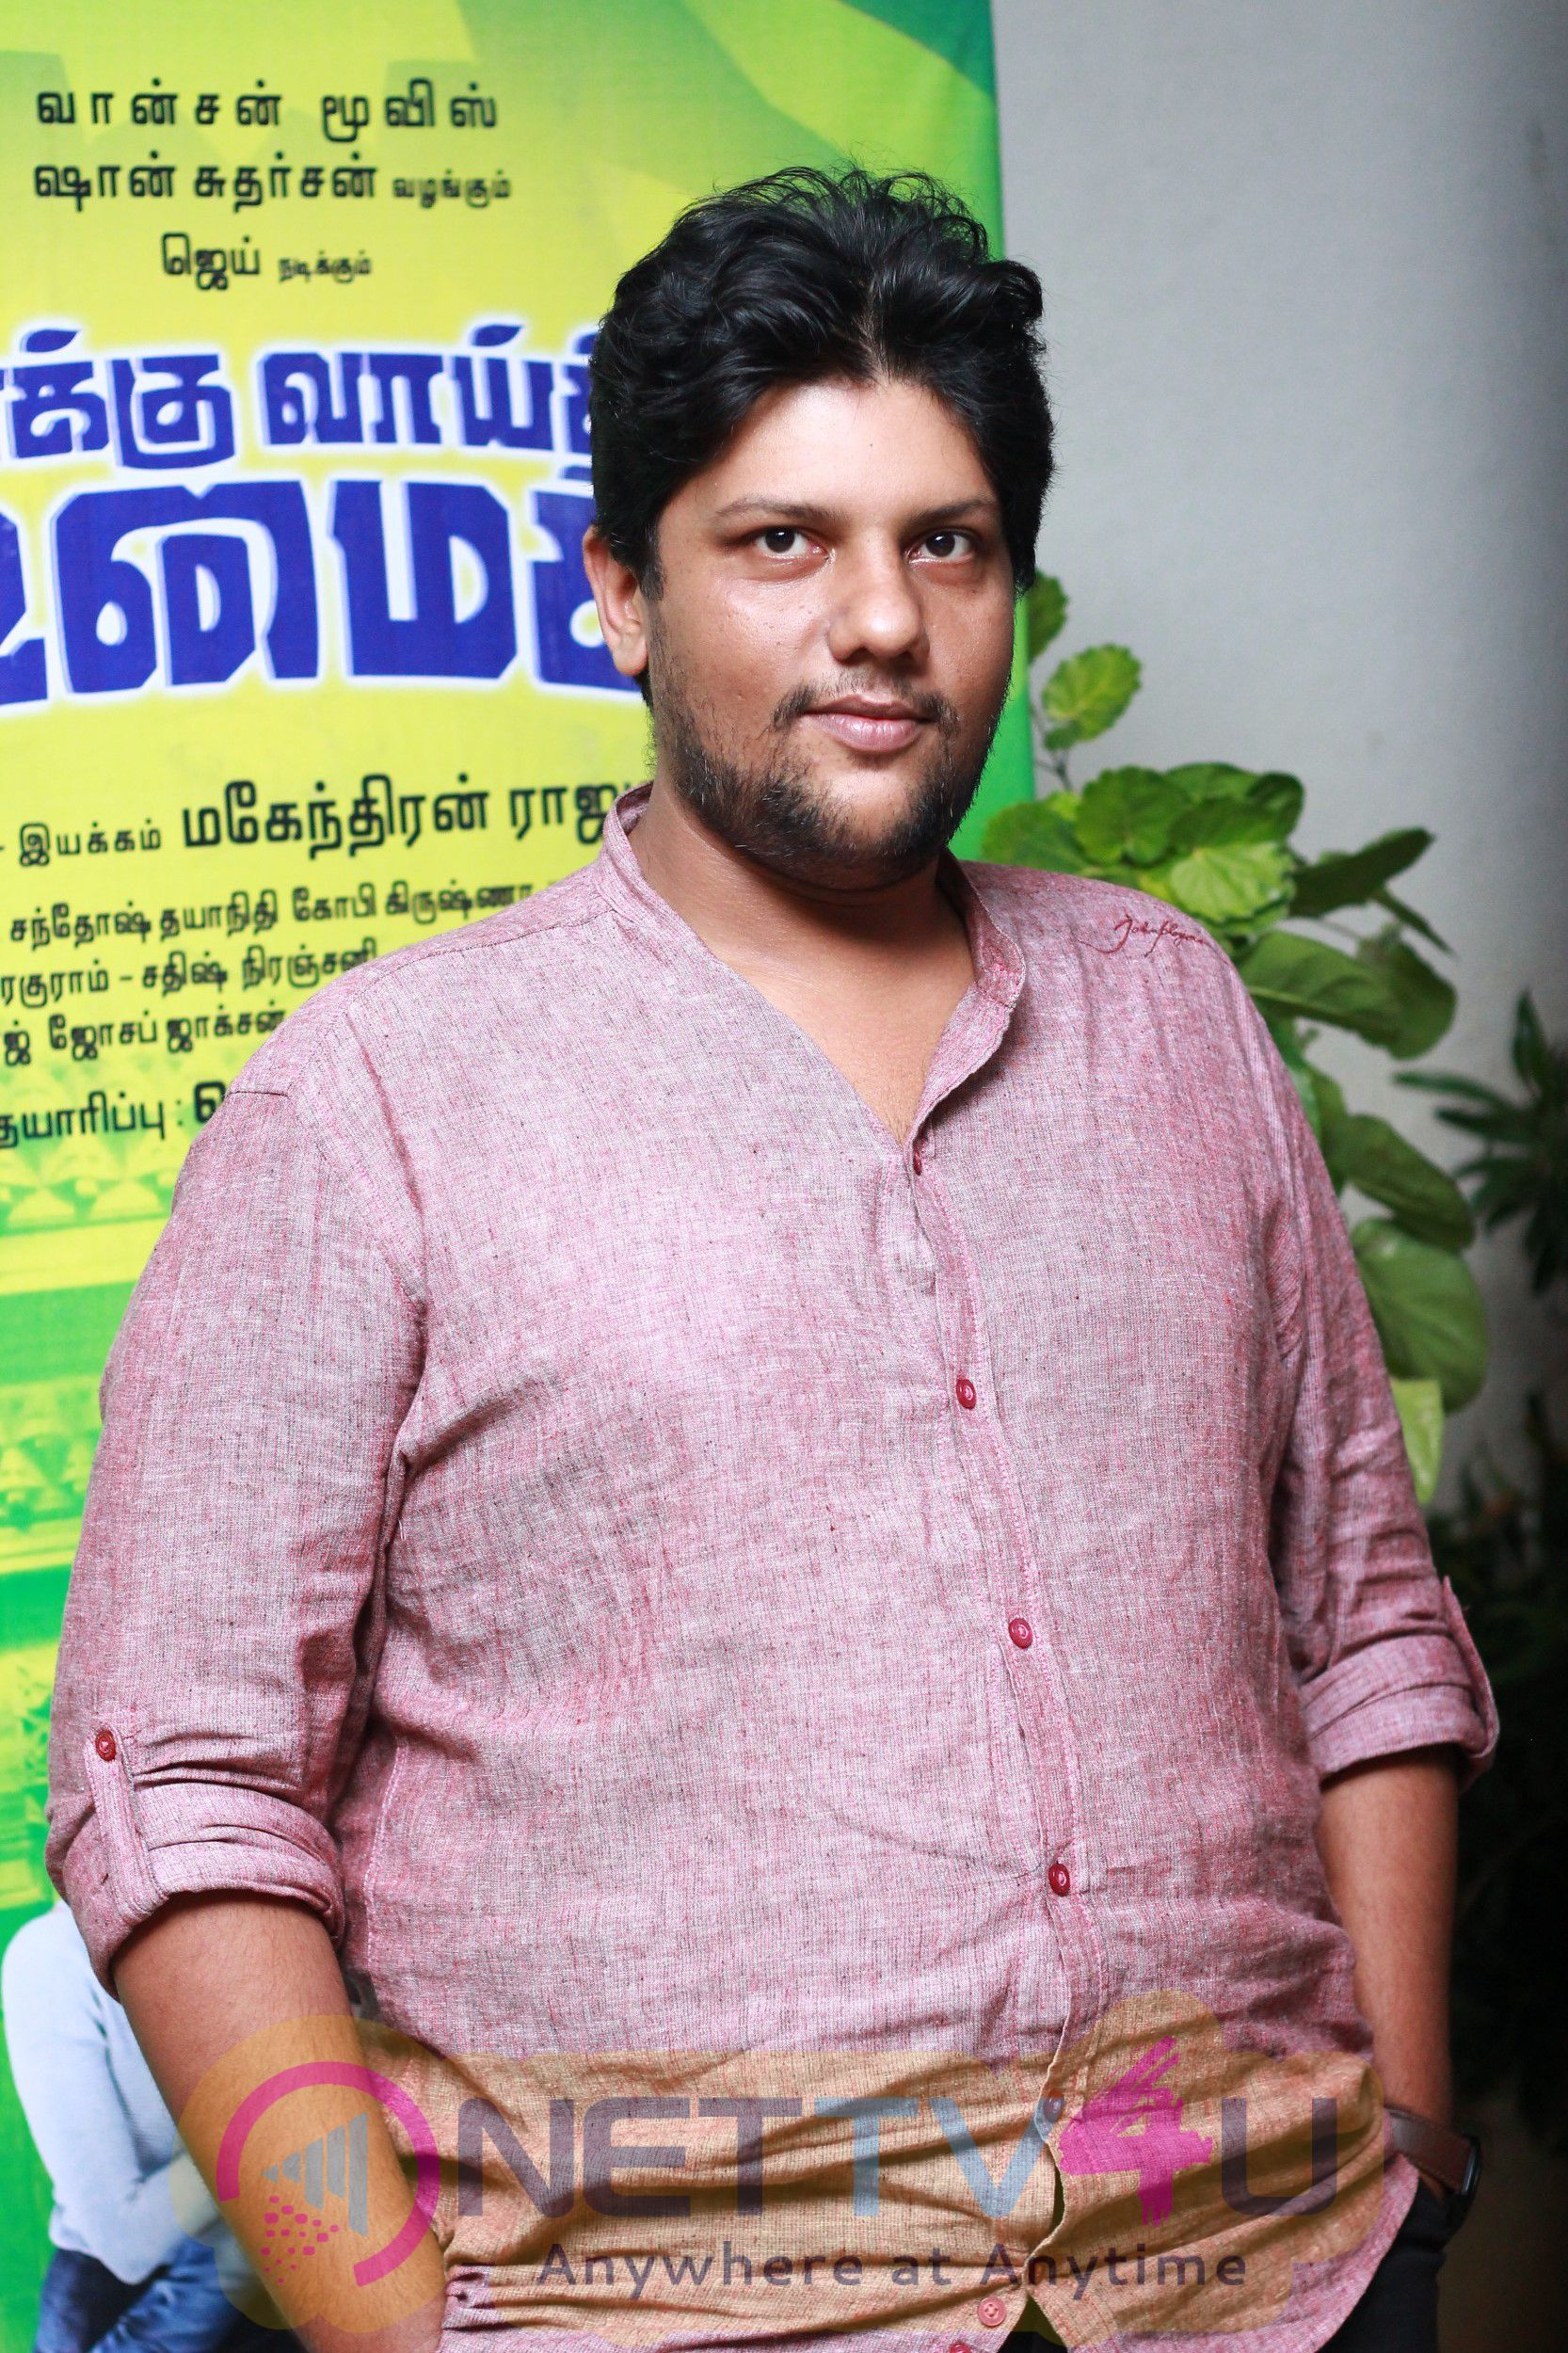 Enakku Vaaitha Adimaigal Press Meet Stills